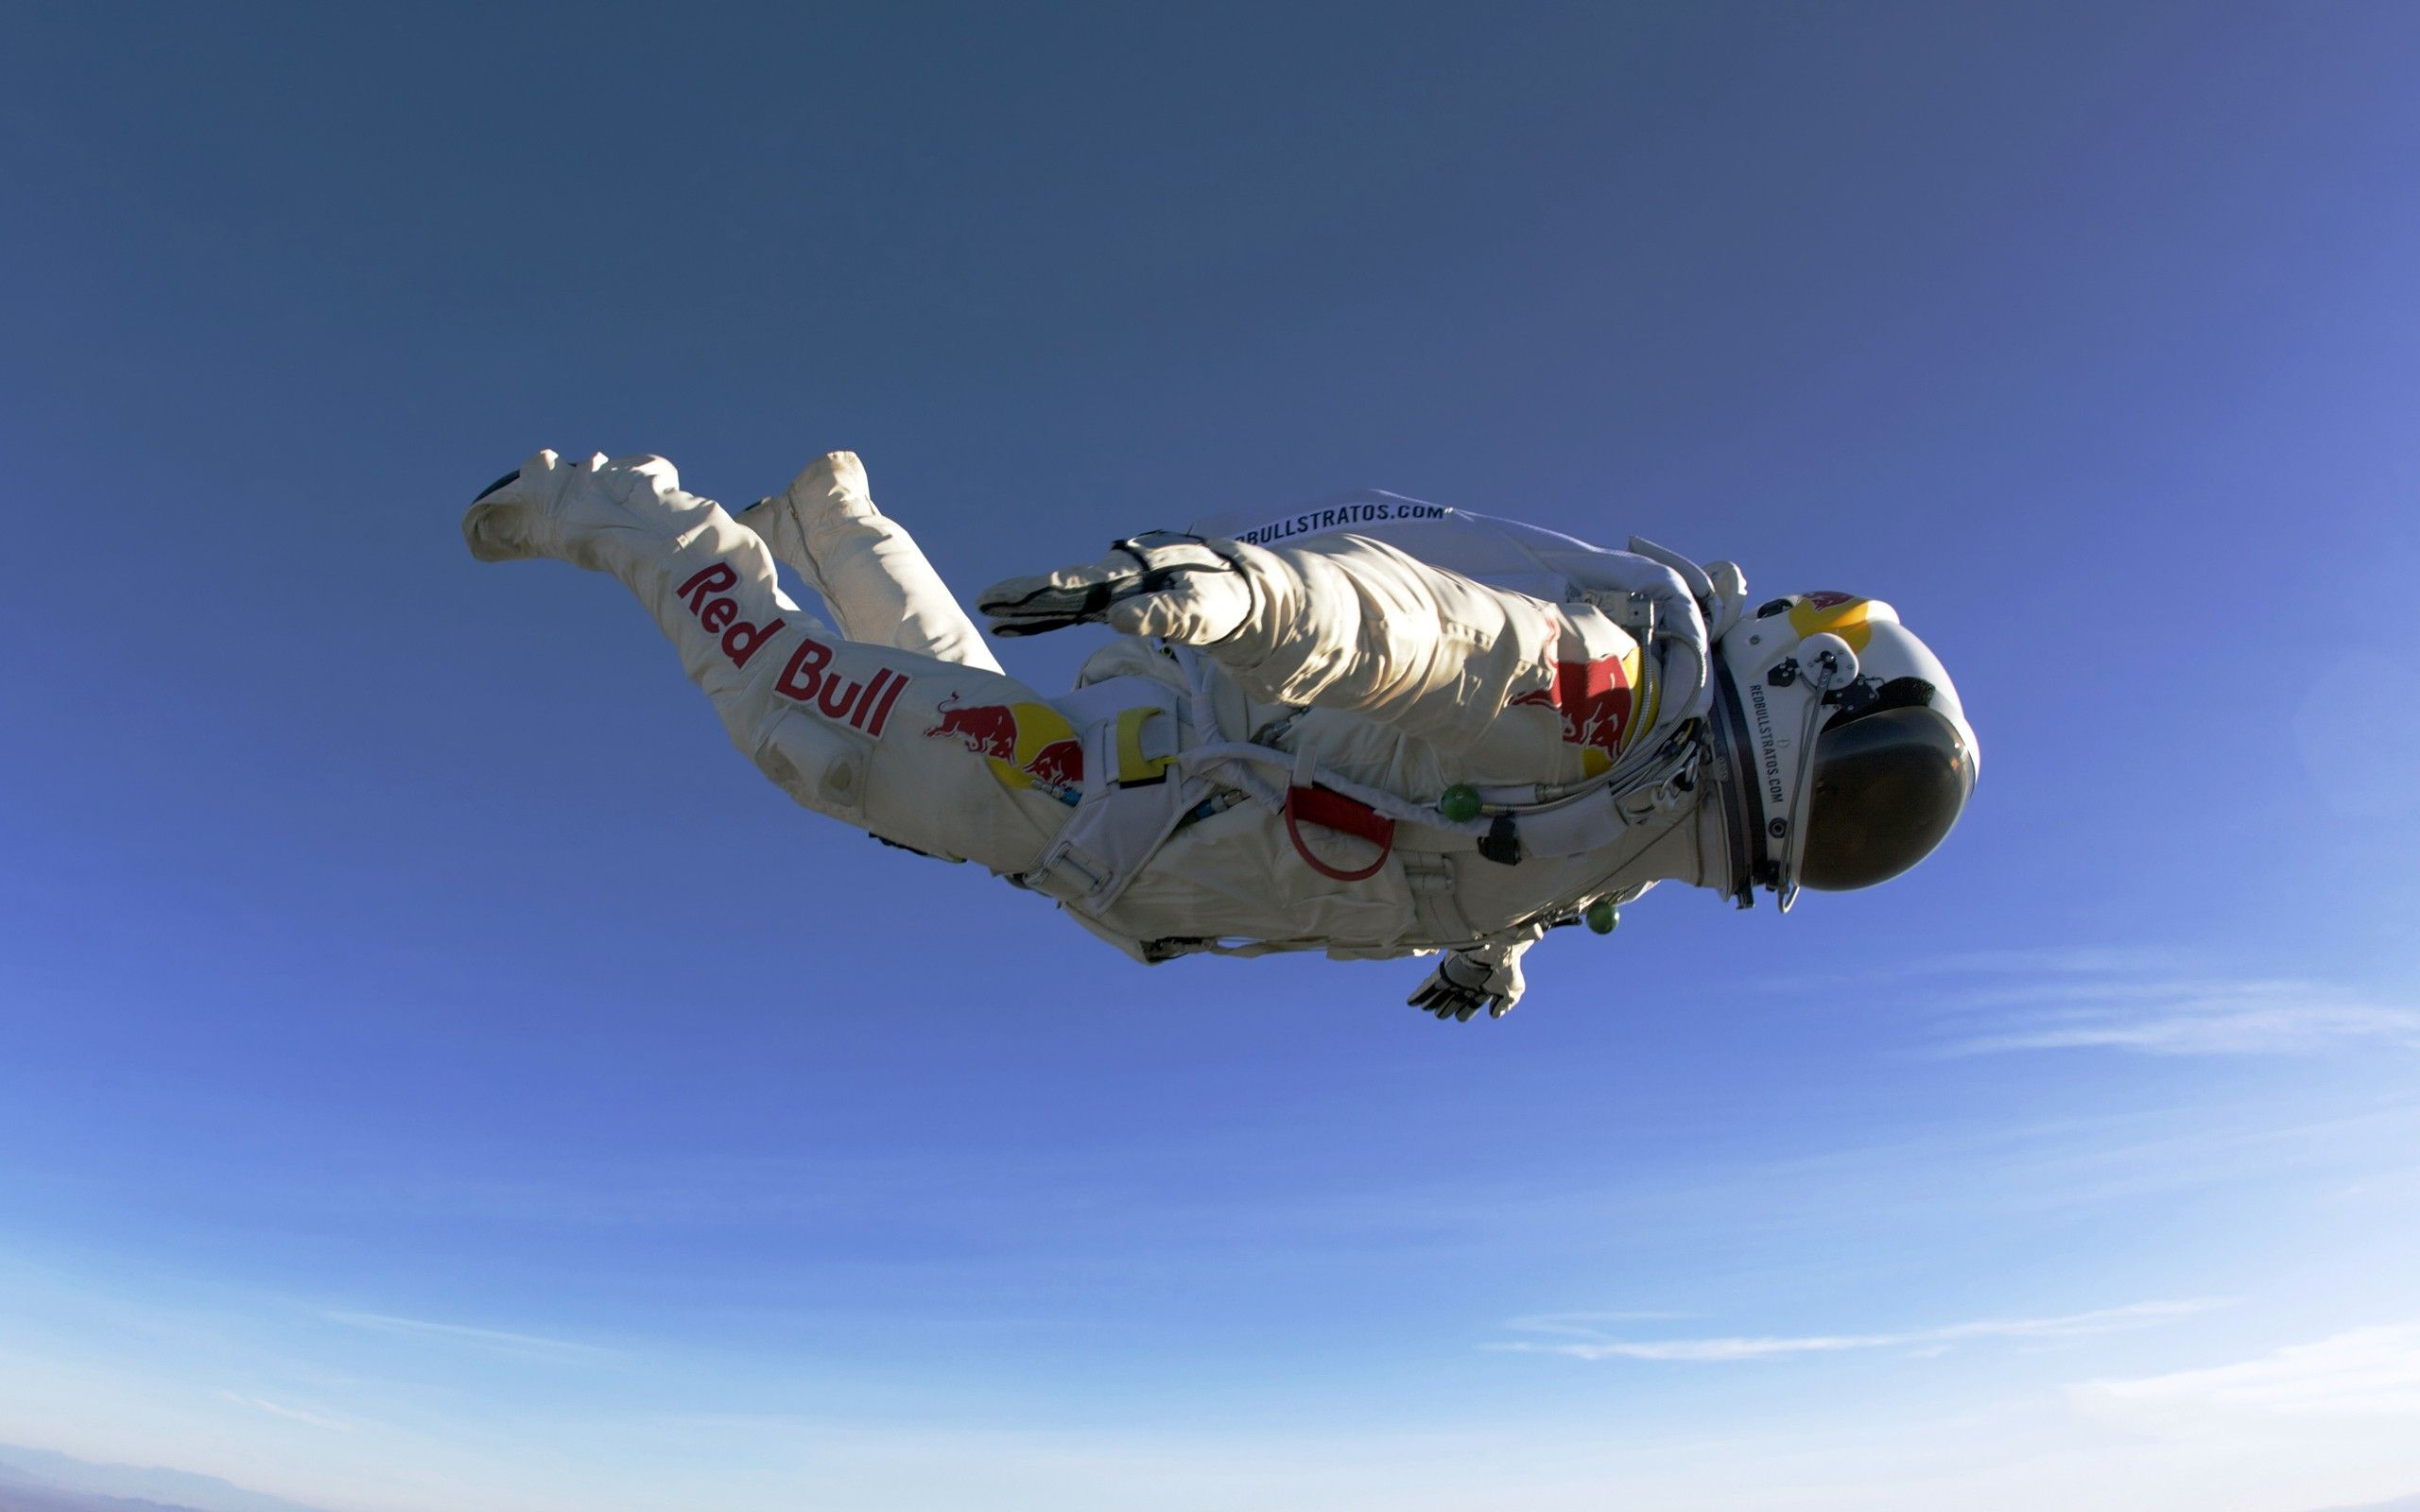 Skydive Free Fall Sports Wallpaper: Skydiver Breaks Record For Manned Balloon Flight At 23